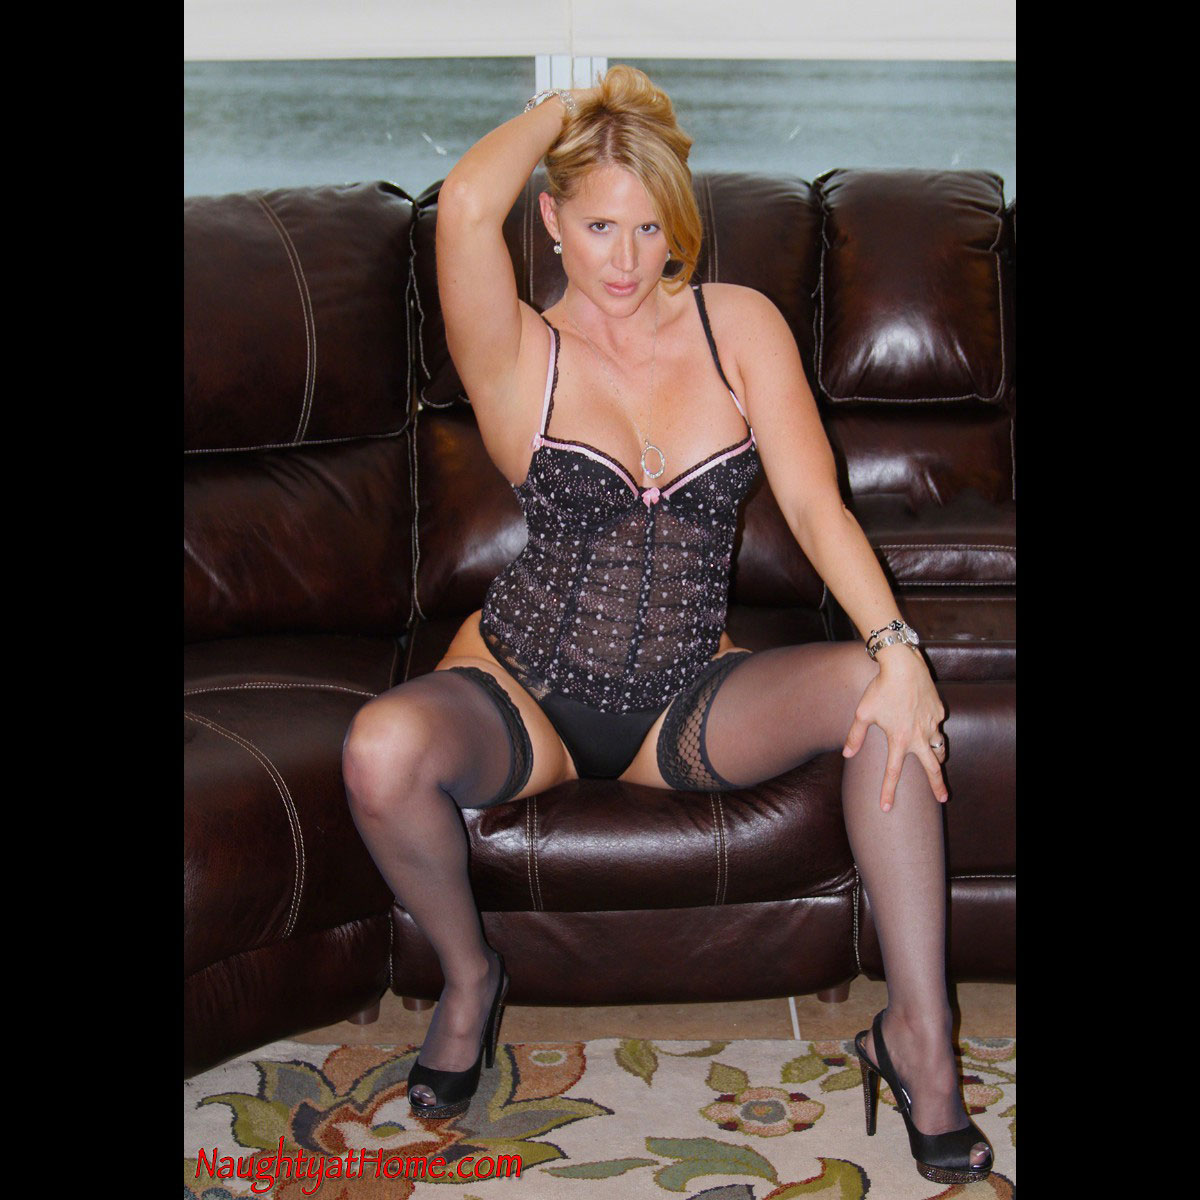 Naughtyathome.com Pictures Porn naughty at home desirae spencer amateur porn milf website